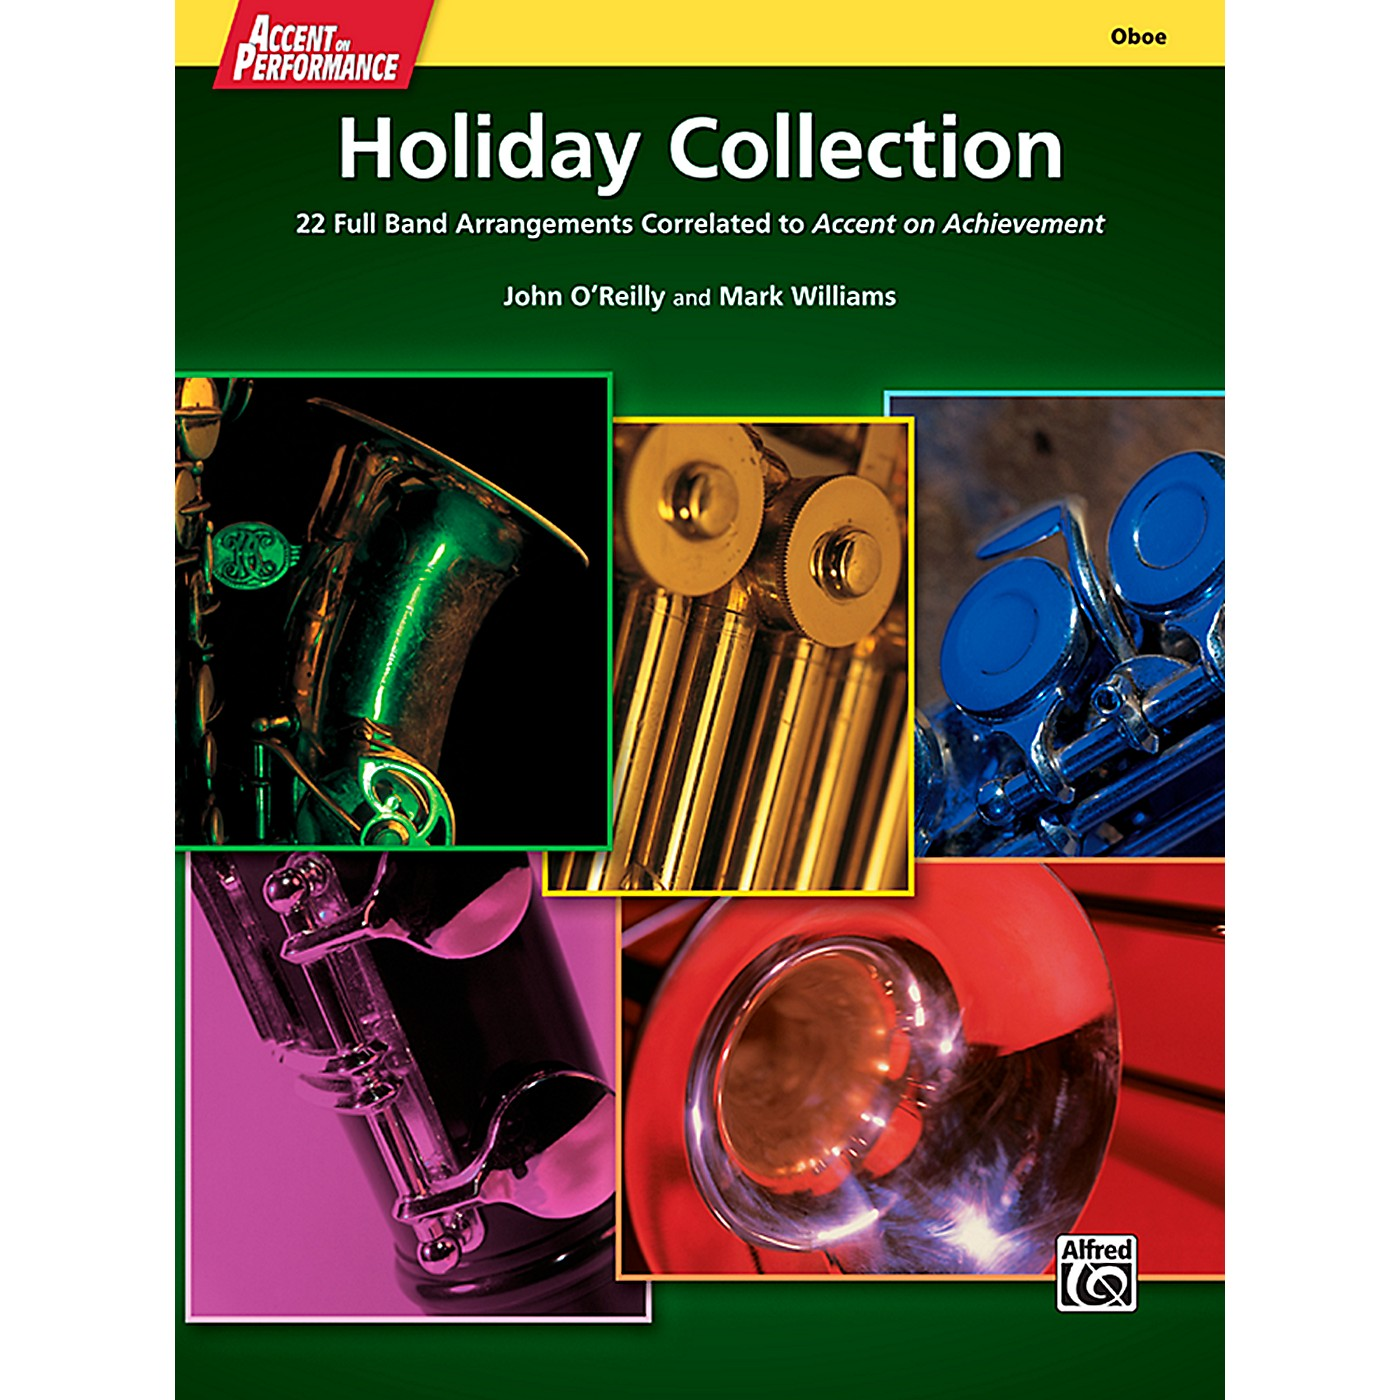 Alfred Accent on Performance Holiday Collection Oboe Book thumbnail